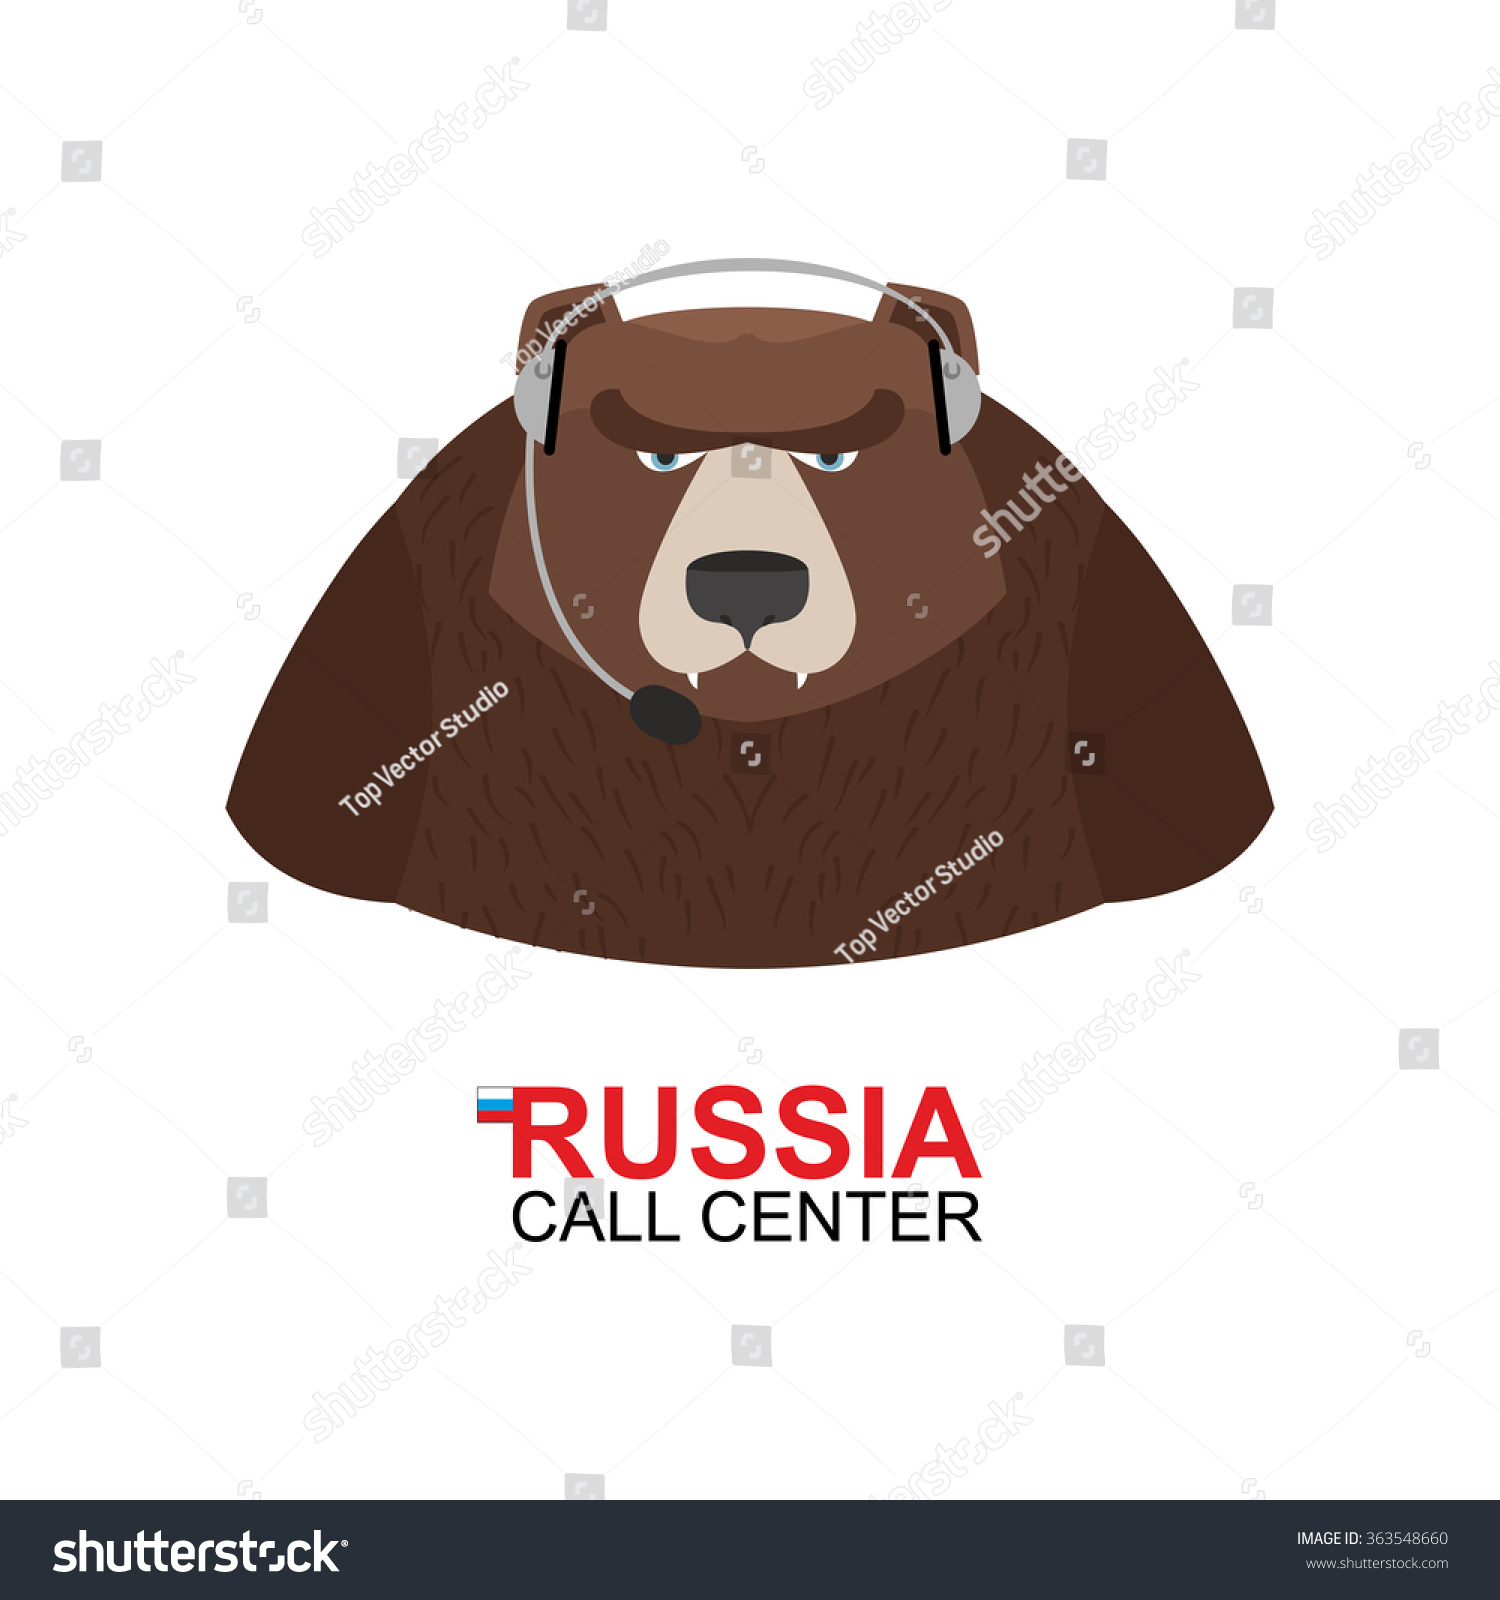 How to call from Russia to Russia